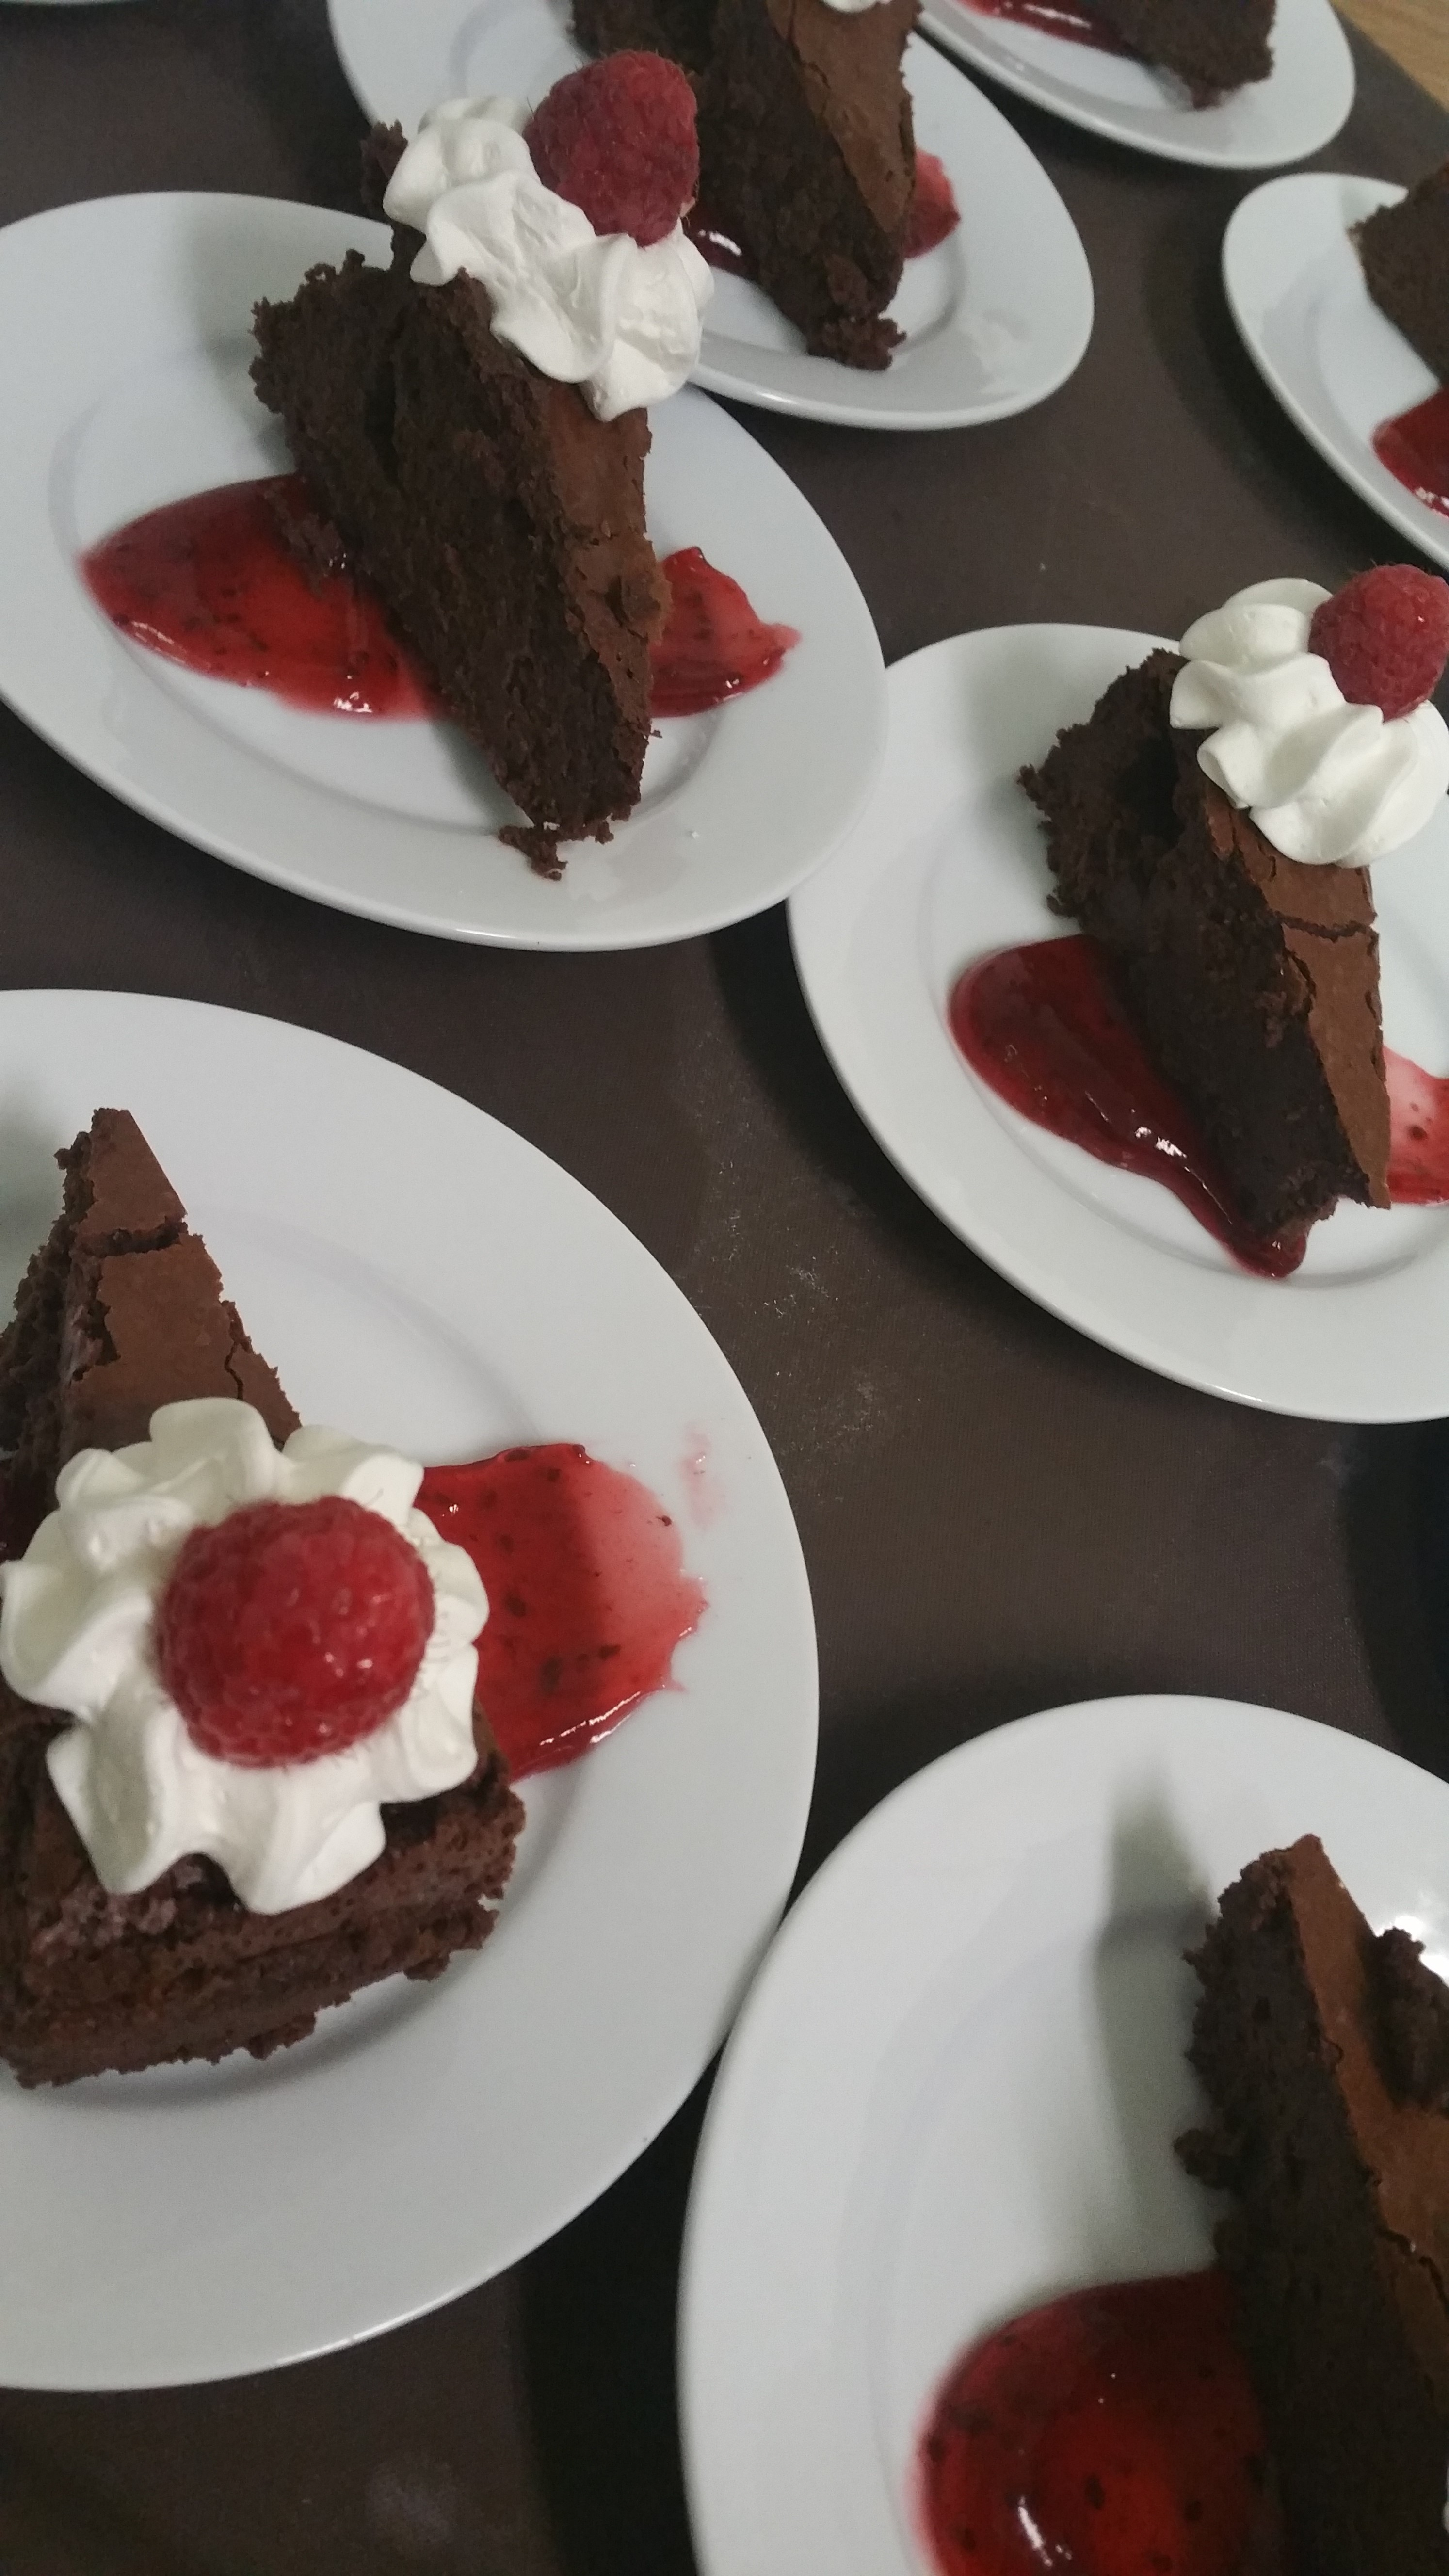 Plated Mocha Chocolate Torte